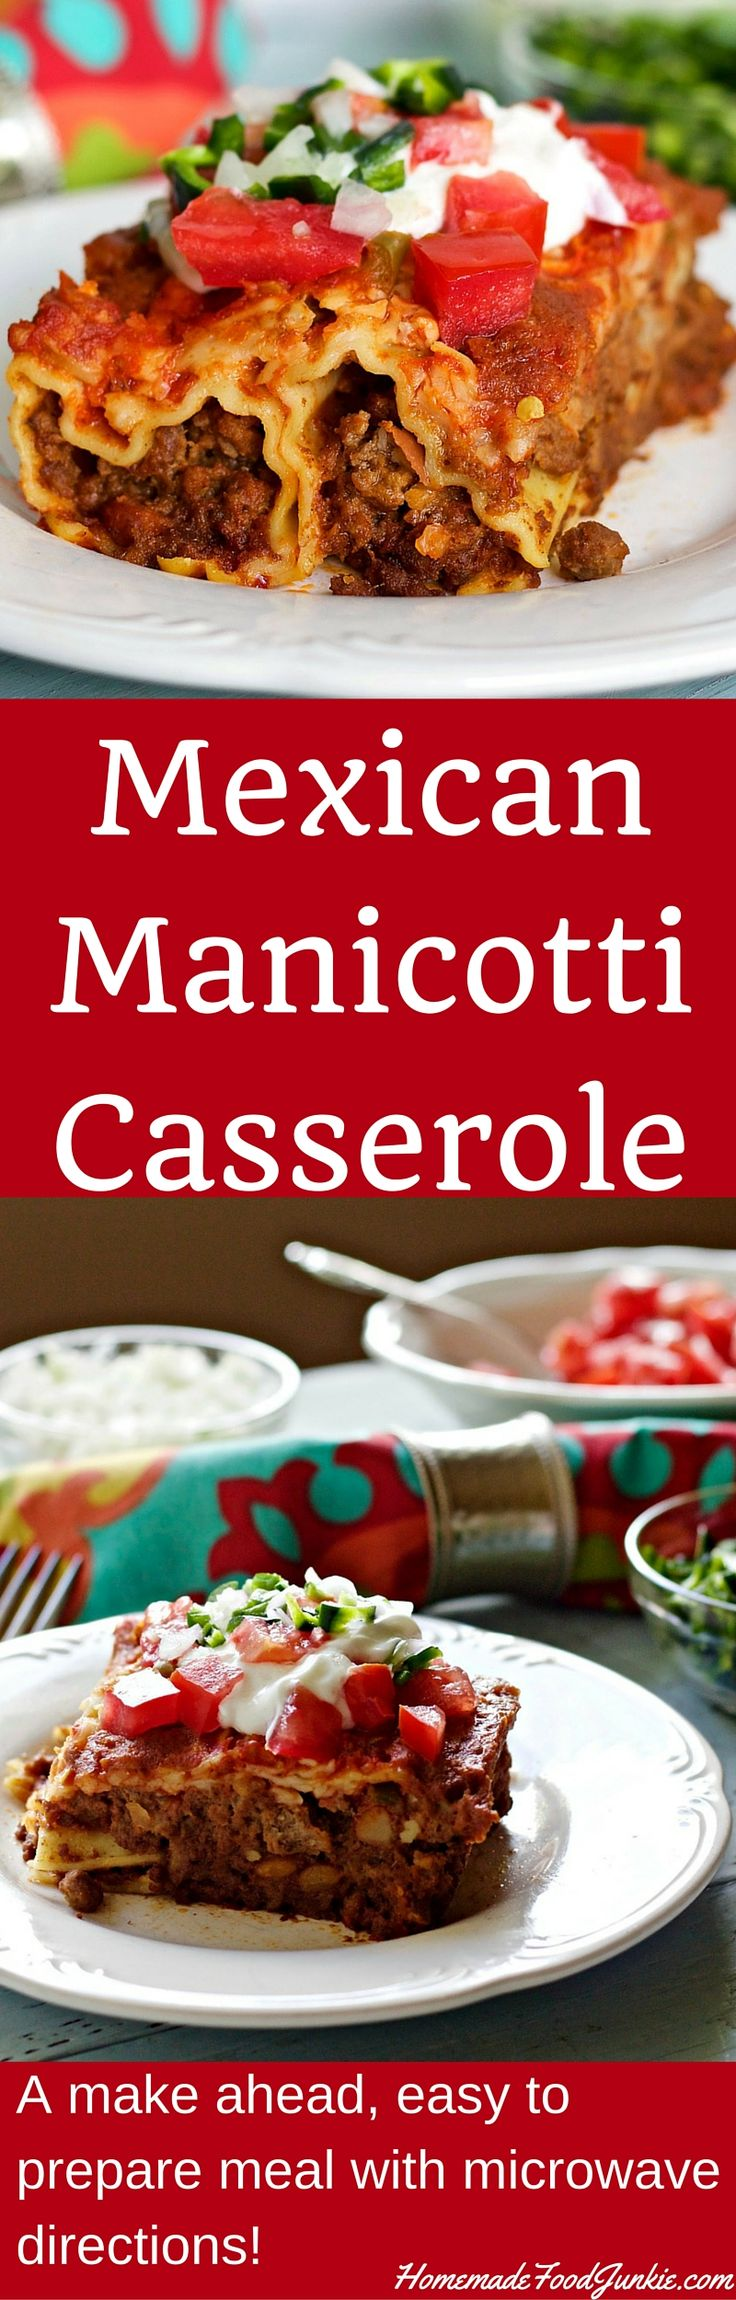 MEXICAN MANICOTTI CASSEROLE is easy to prepare, make ahead or eat it right away. Microwave directions included